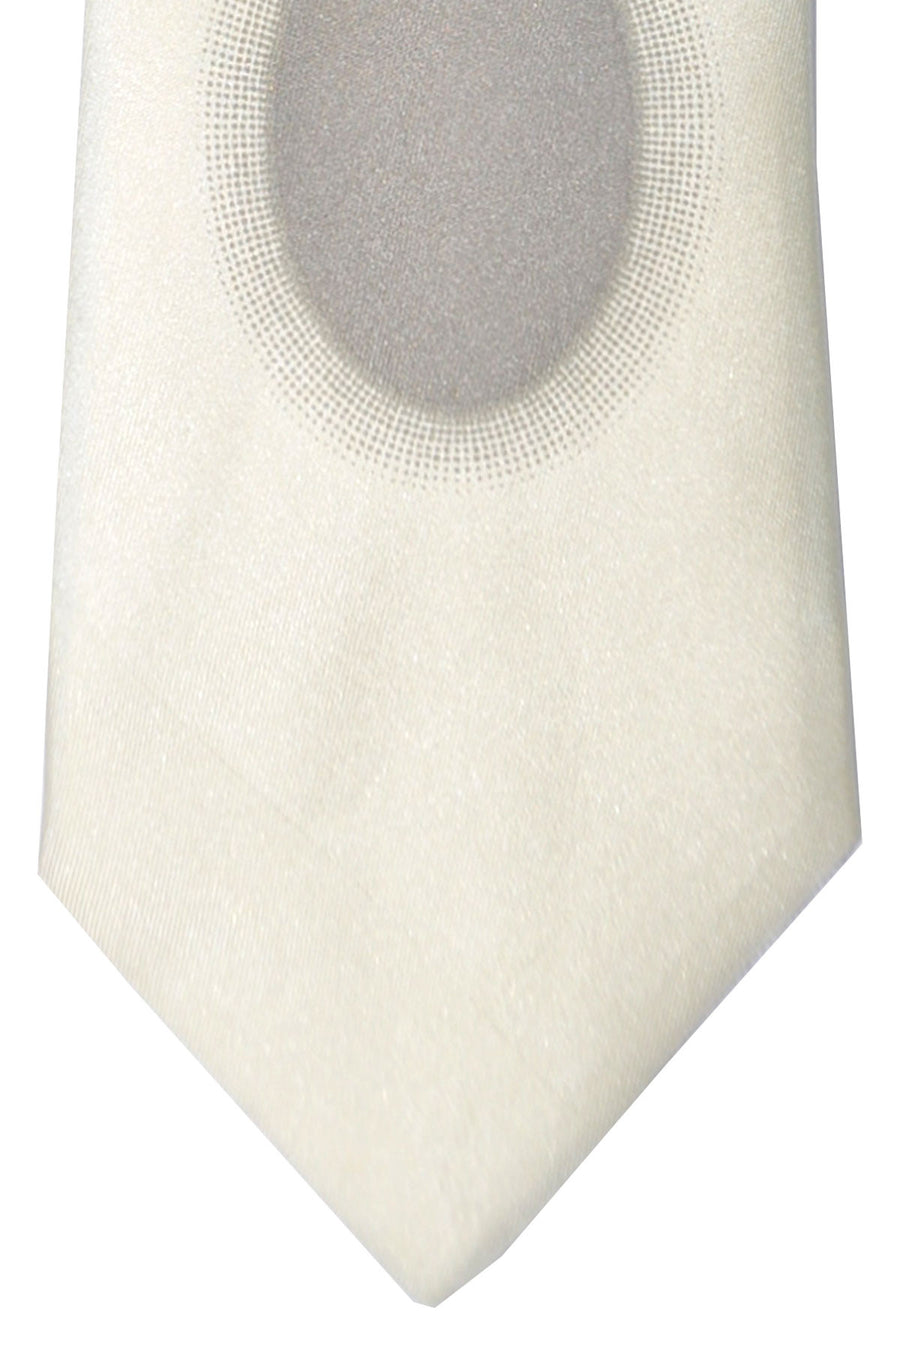 Gene Meyer Tie Cream Geometric Design